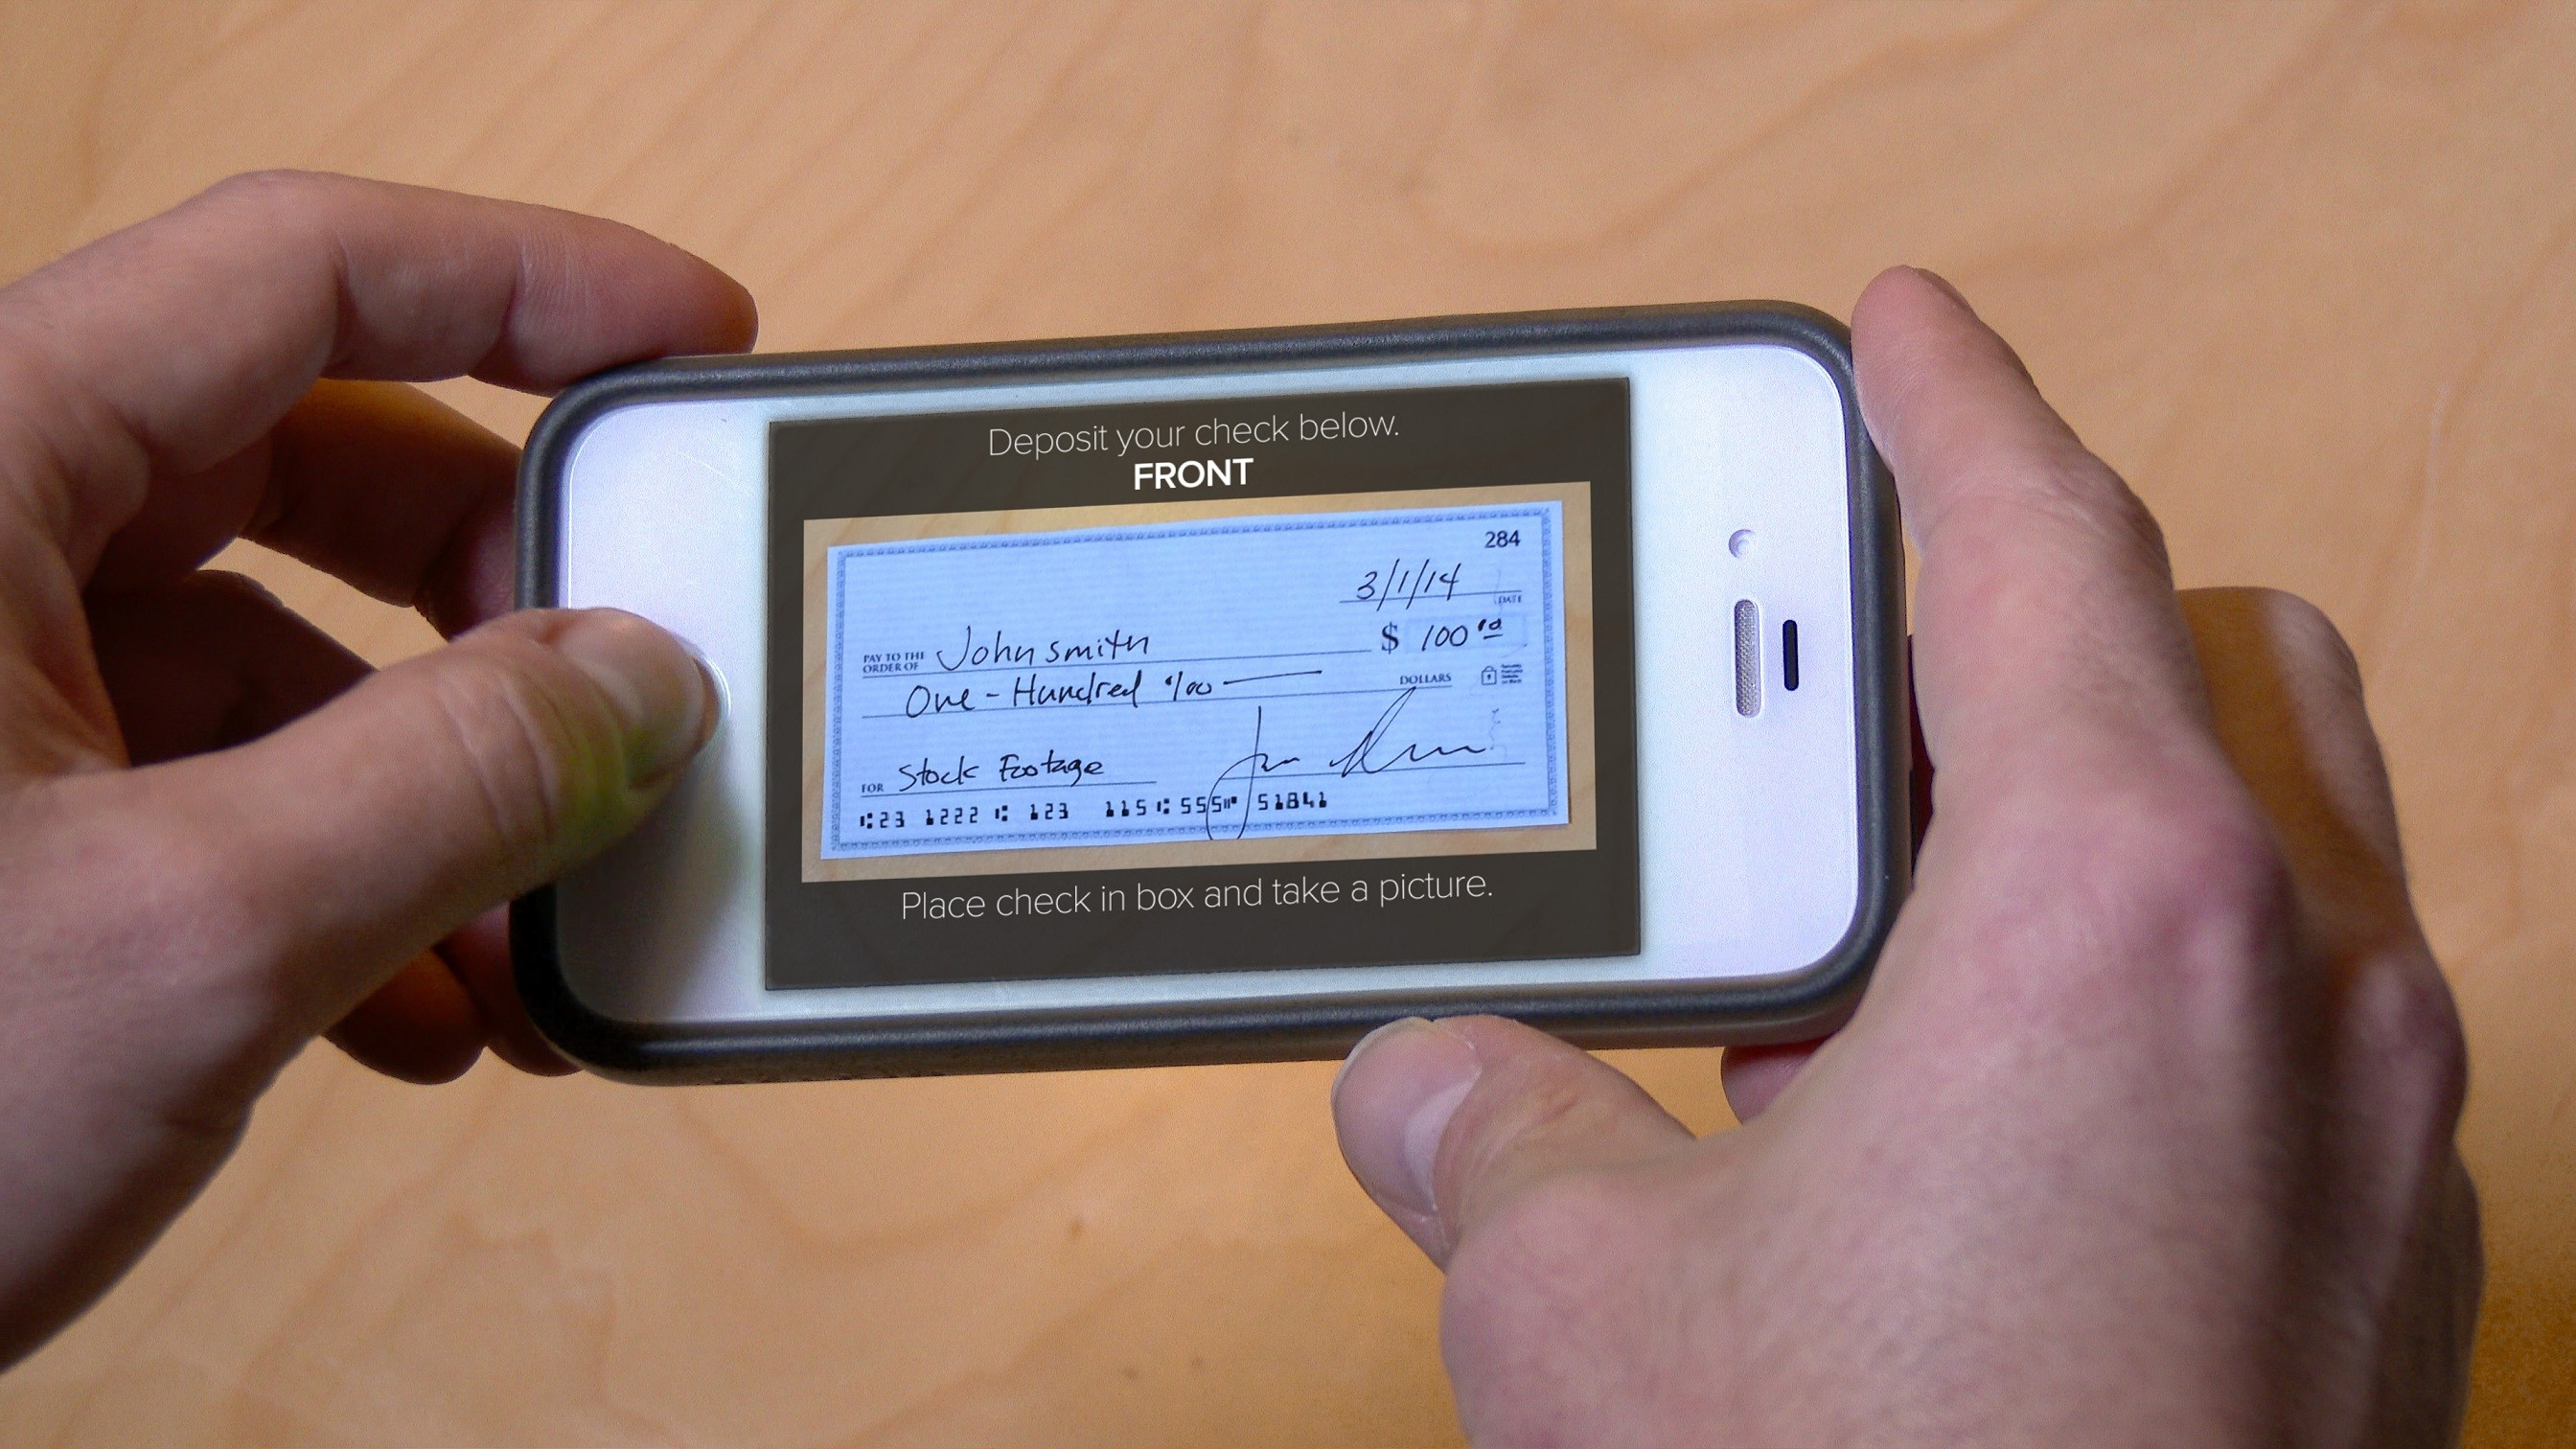 Depositing a Check with Cell Phone